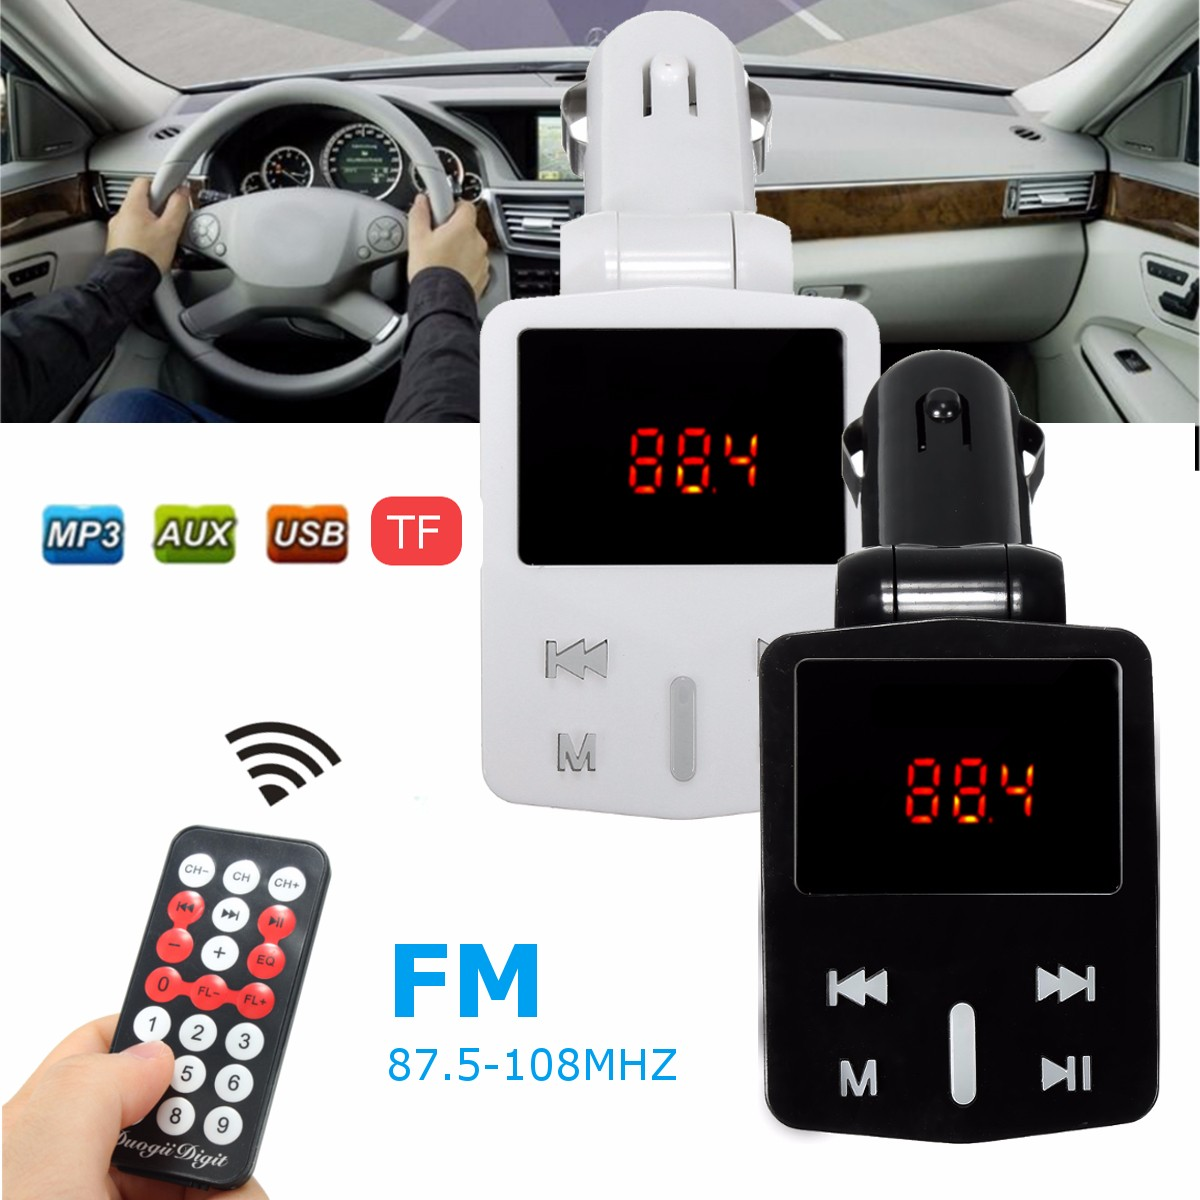 1.2″ LED Display Car Kit MP3 Player FM Transmitter Modulator MicroSD Car Charger For iphoneX Samsung